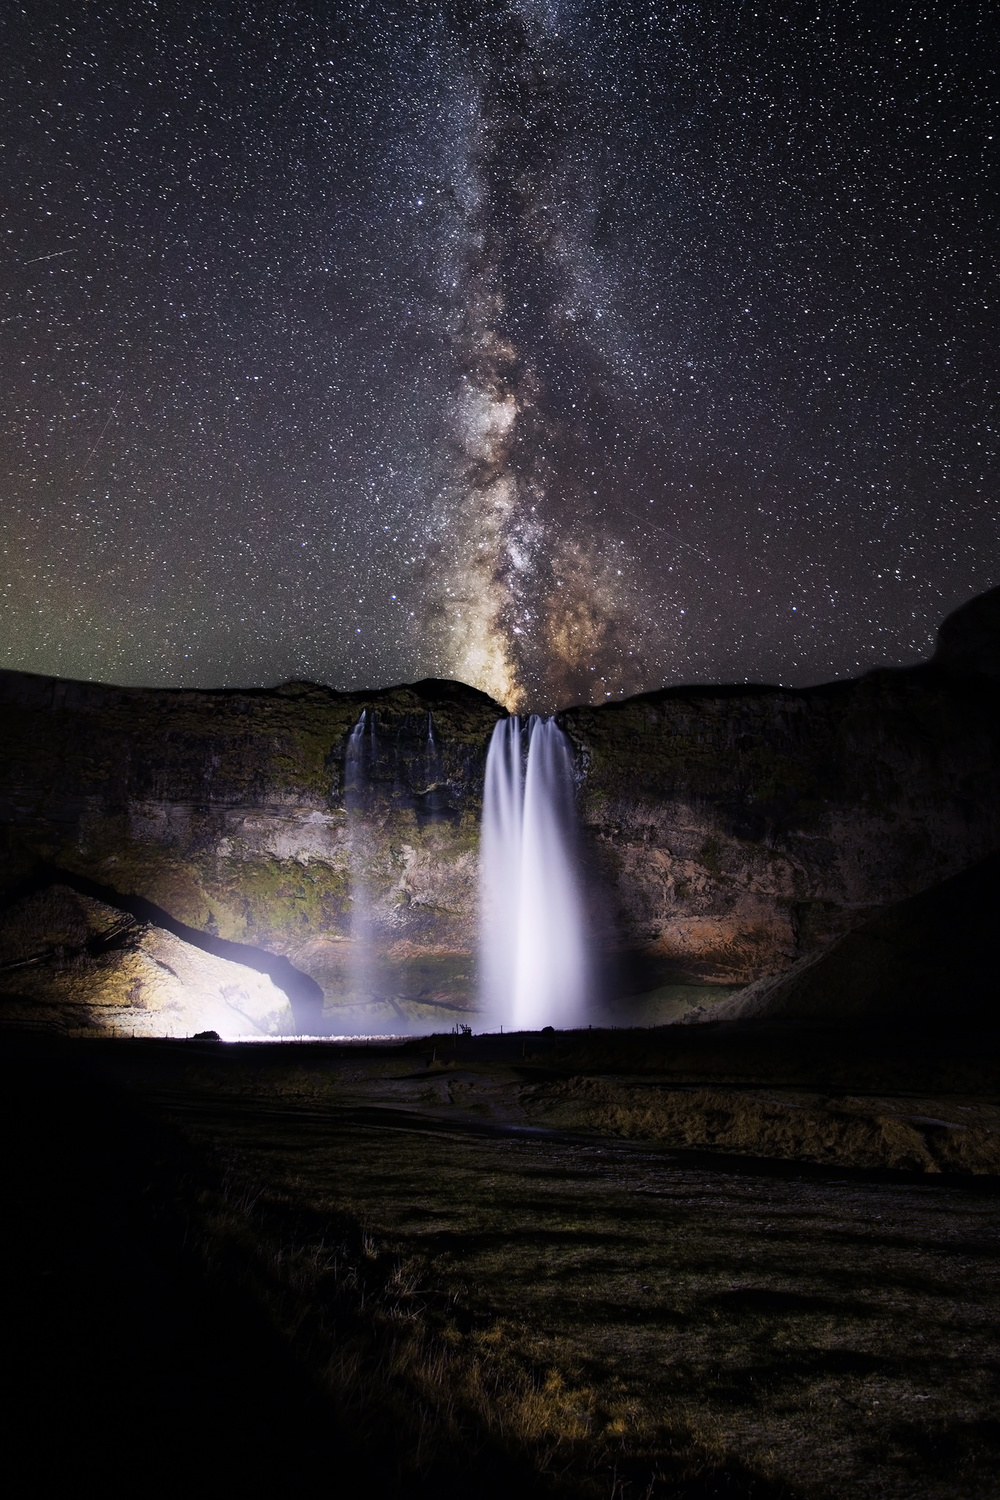 Waterfall-at-night.jpg